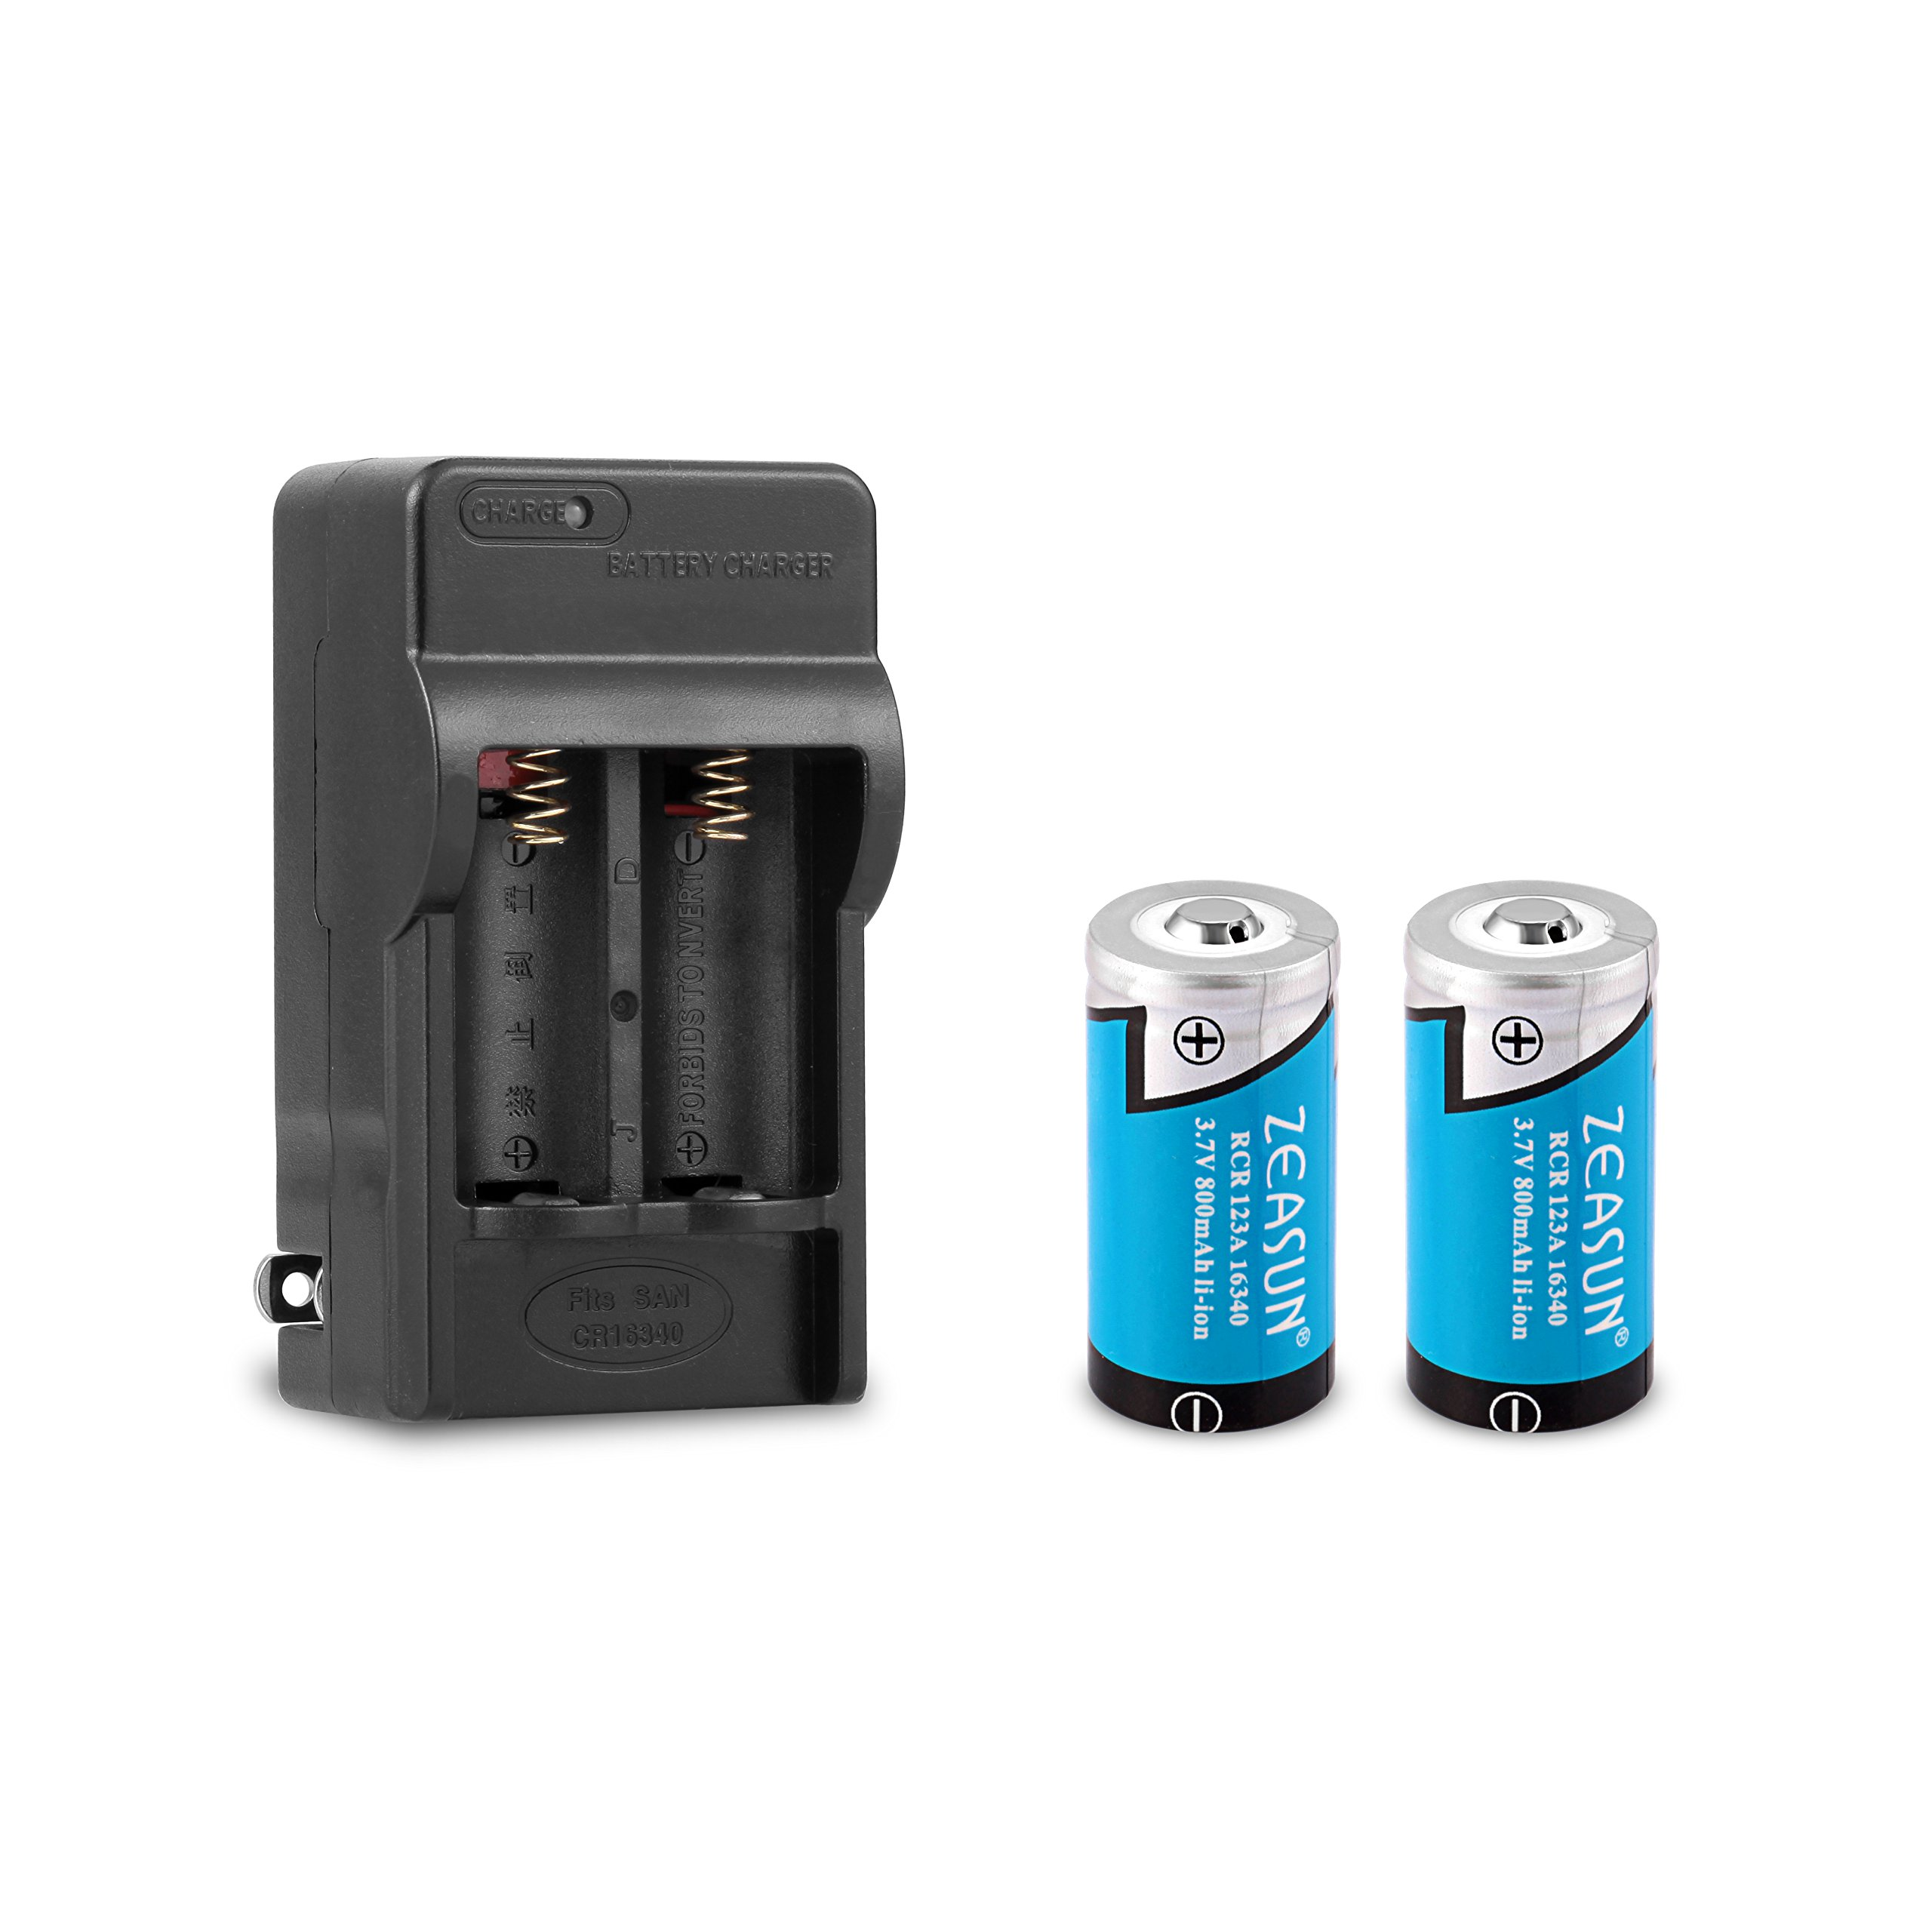 16340/ RCR123A Rechargeable Lithium Battery, Zeasun 800 mAh 3.7 V Battery 2-Pack with Dual Channel 16340 Battery Charger